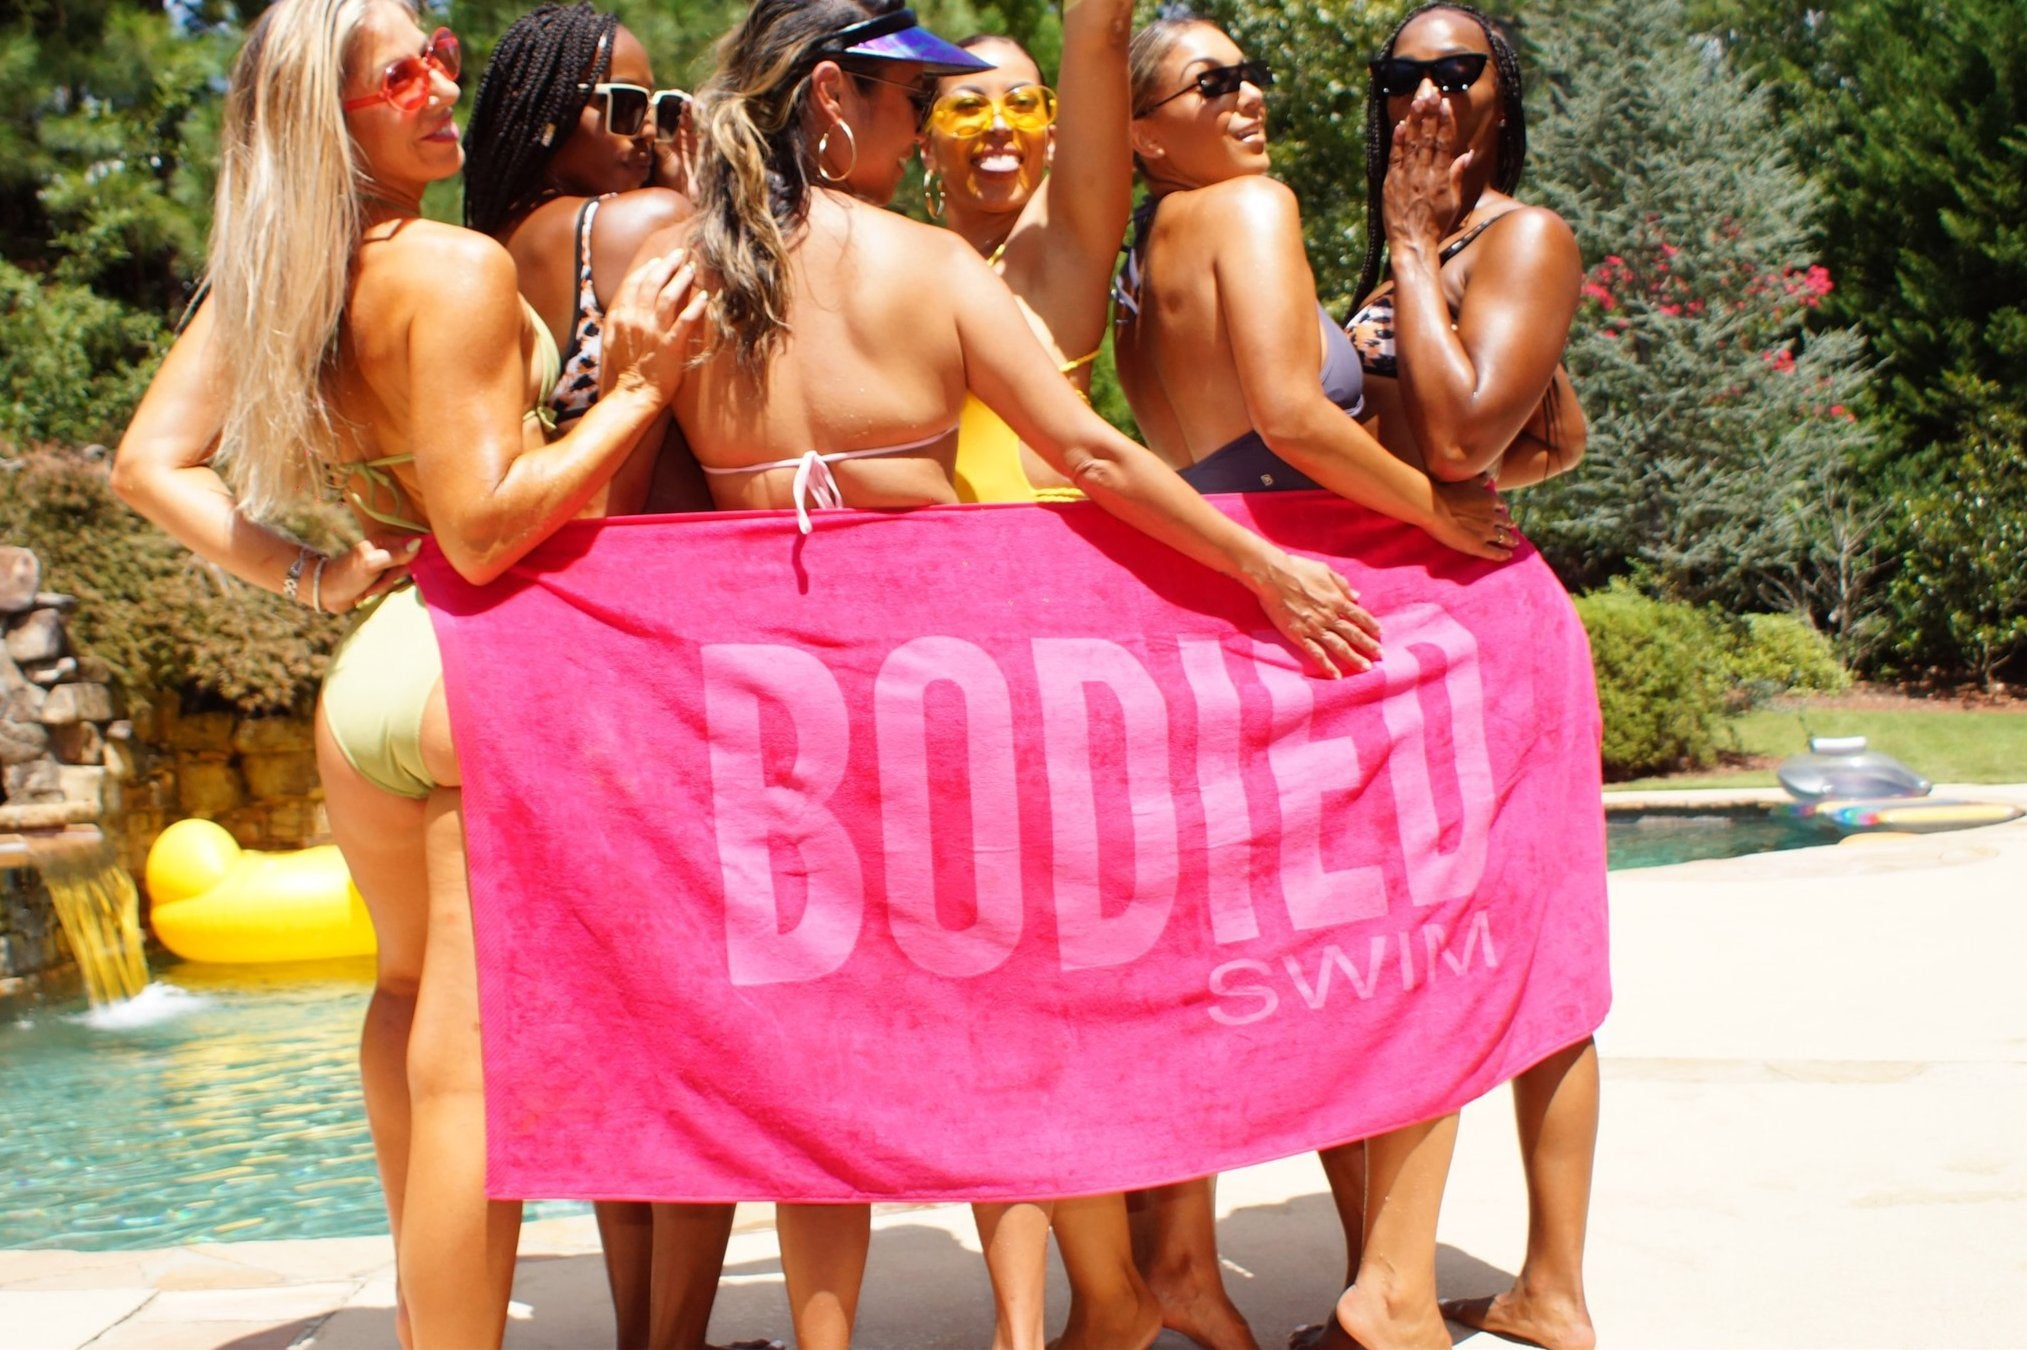 BODIED SWIM TOWEL